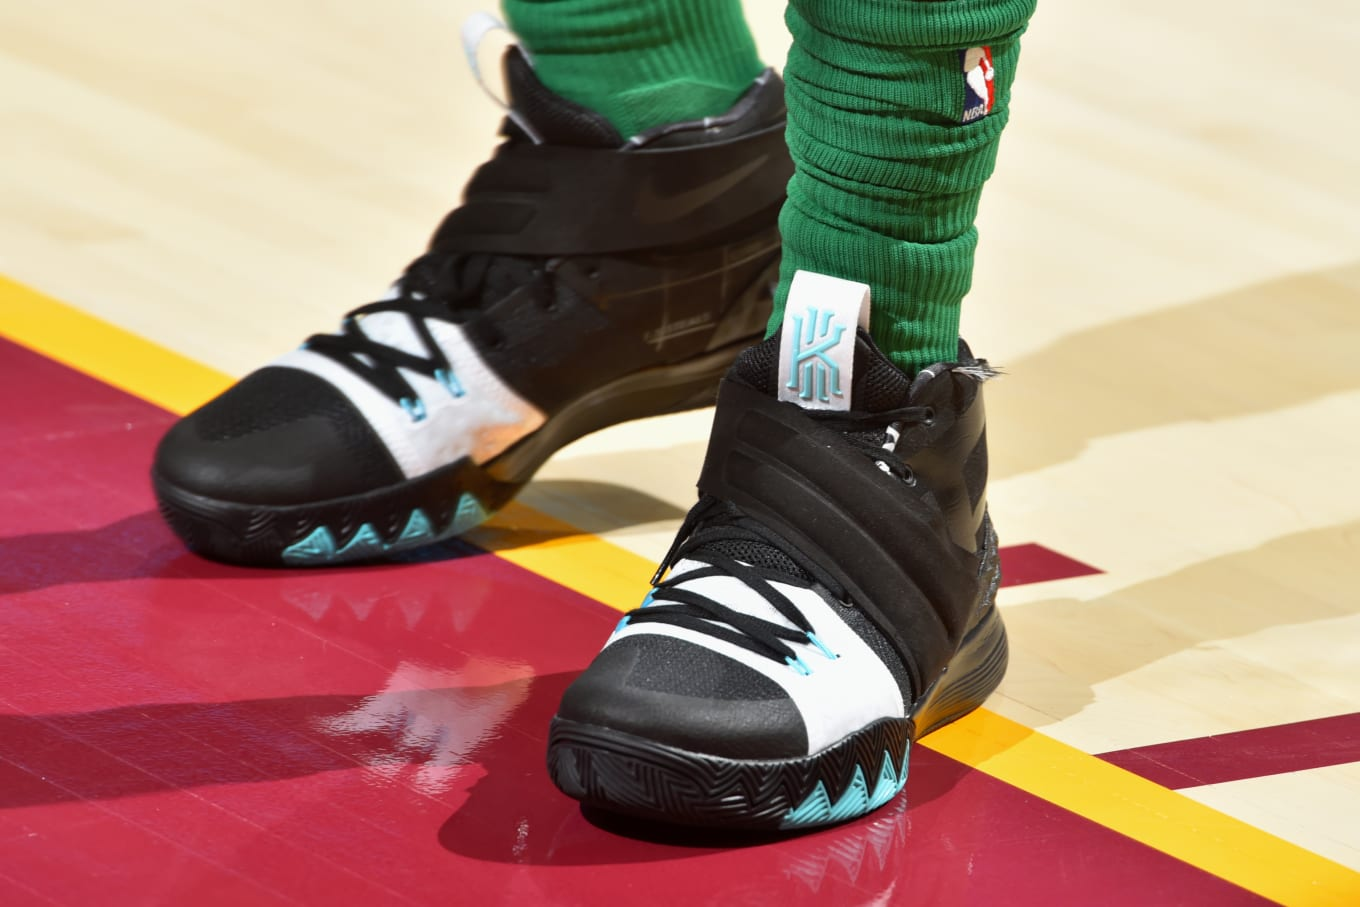 bbbcfbf88b0 Kyrie Irving Debuts New Nike Sneaker. A hybrid of the Kyrie 1